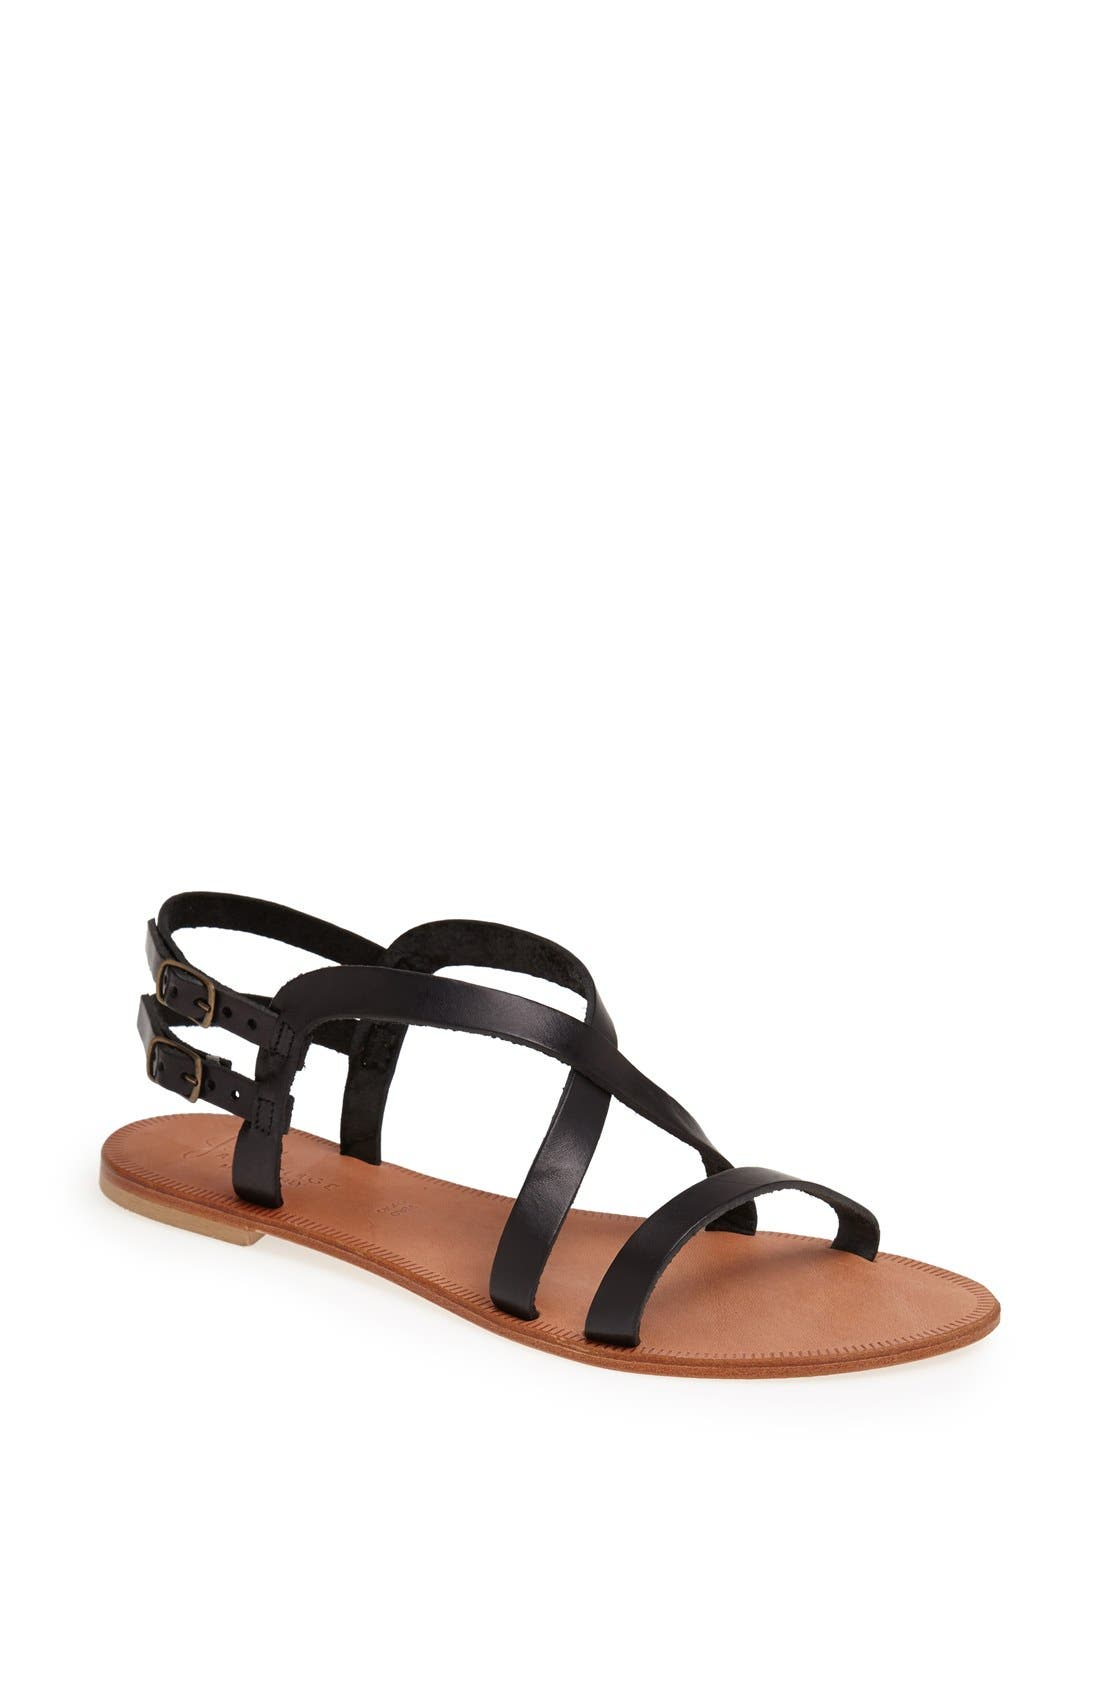 Main Image - Joie a la Plage 'Socoa' Leather Sandal (Women)